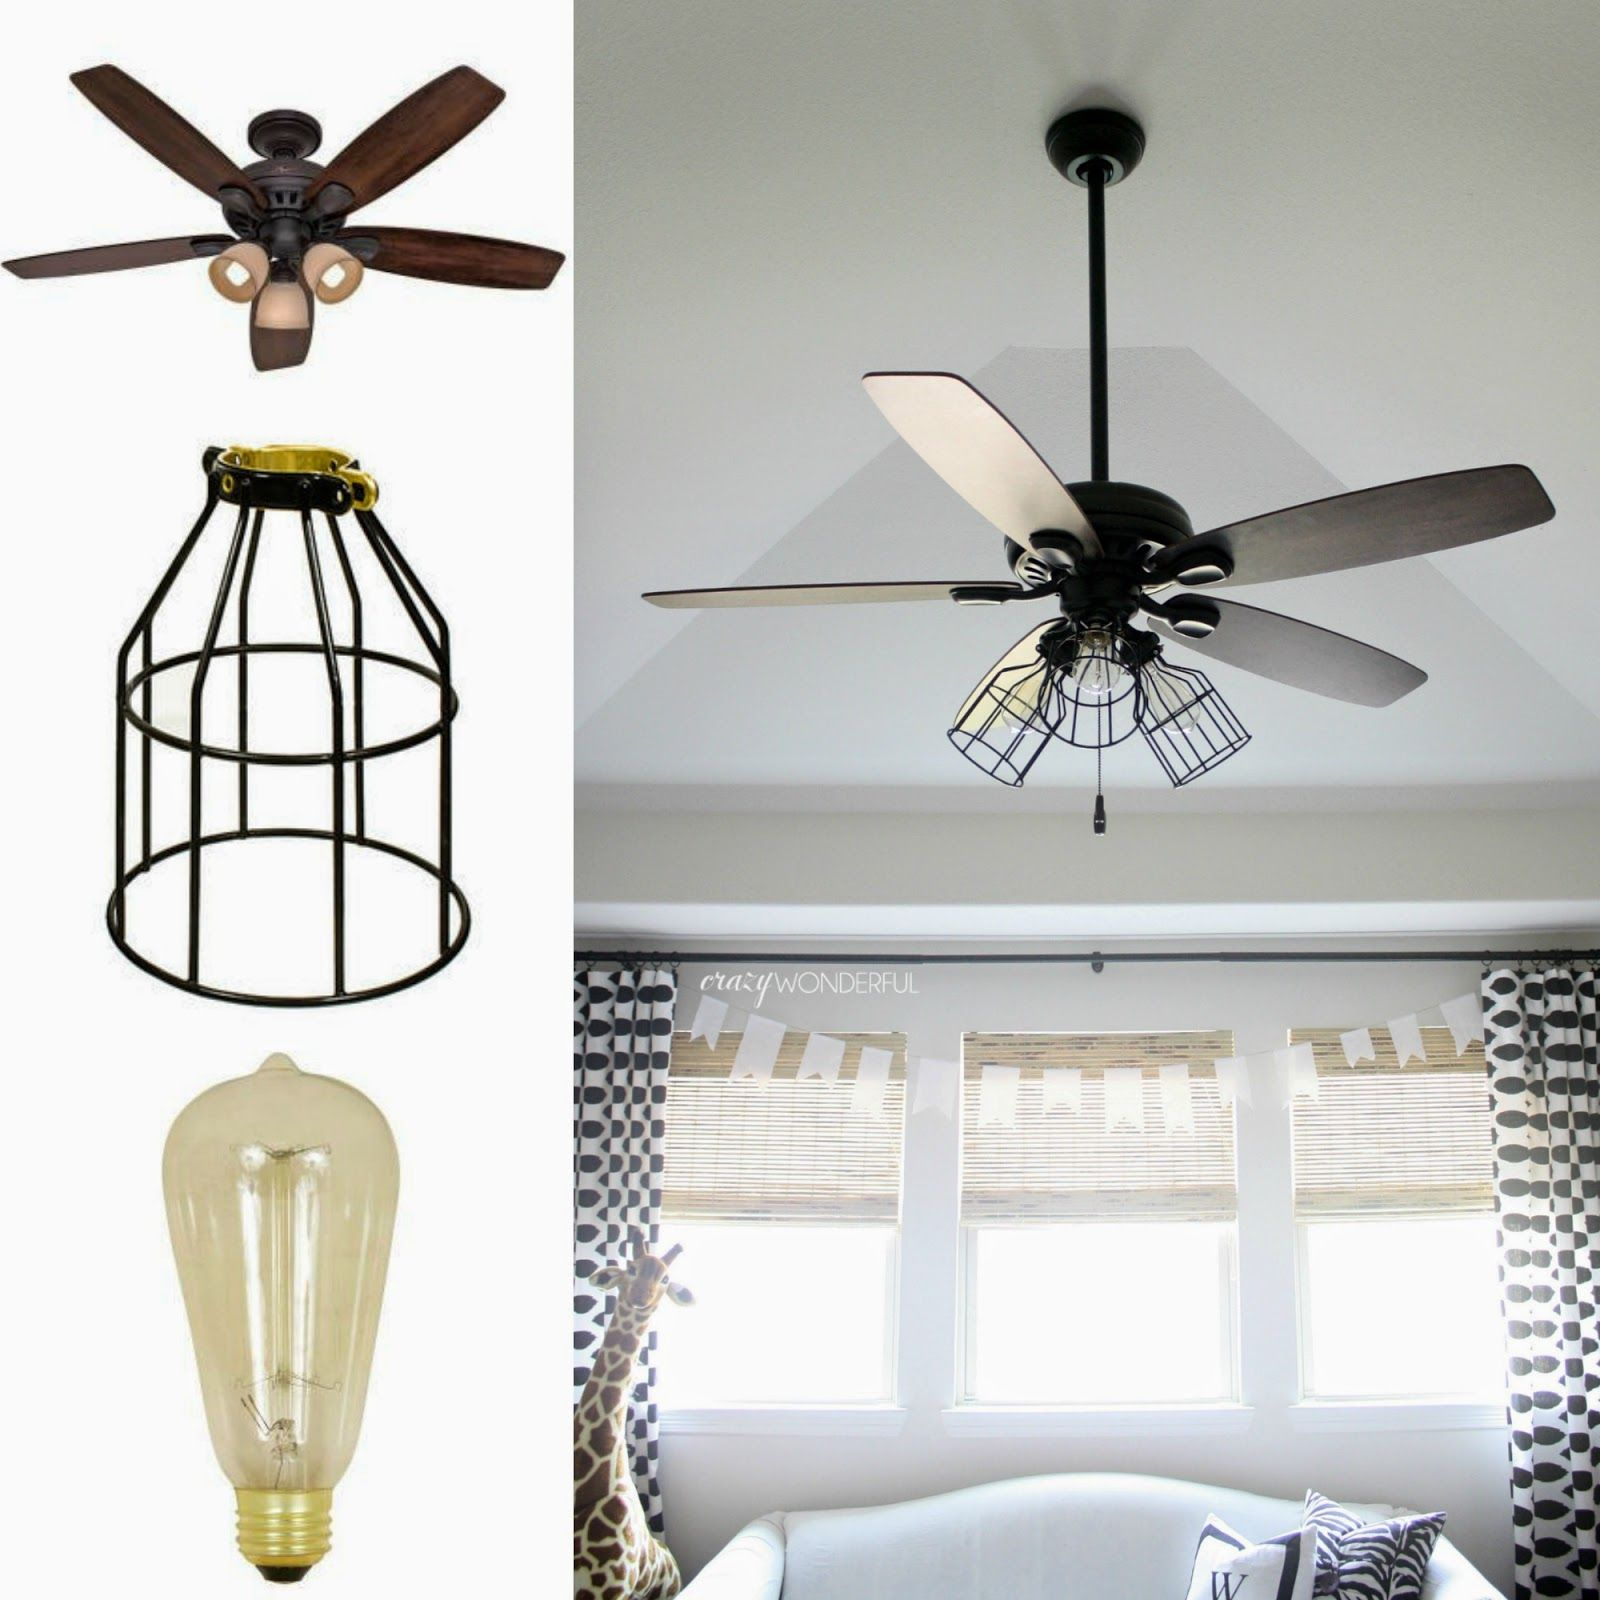 Crazy wonderful diy cage light ceiling fan ceiling fans crazy wonderful diy cage light ceiling fan aloadofball